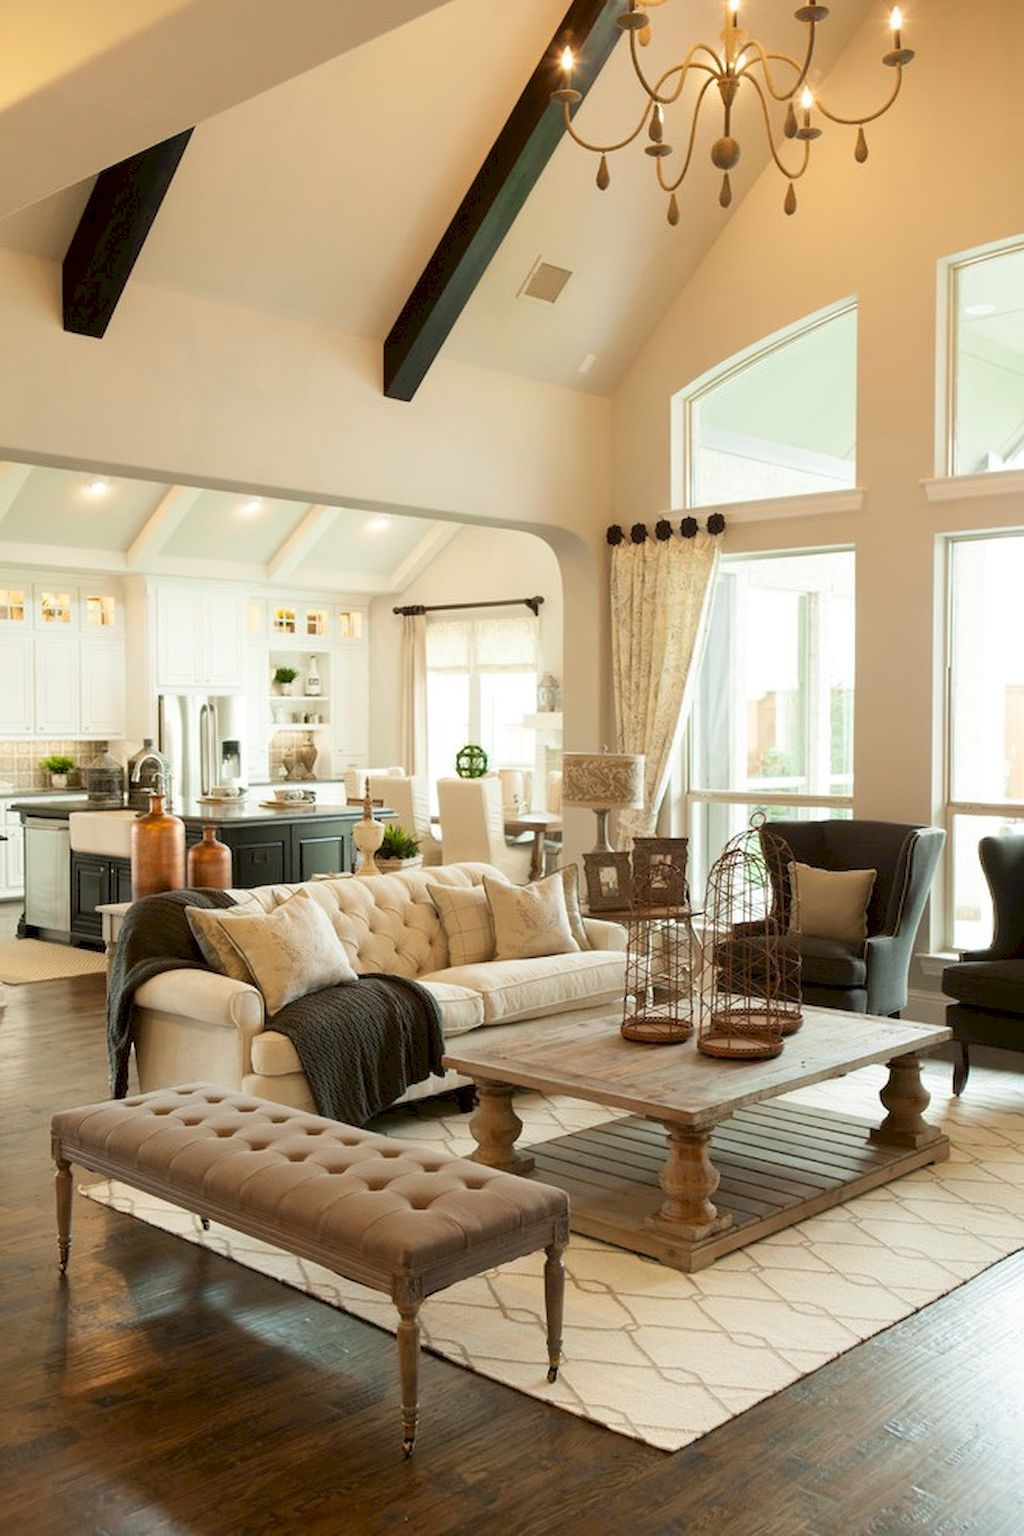 Cool 60 Amazing Farmhouse Style Living Room